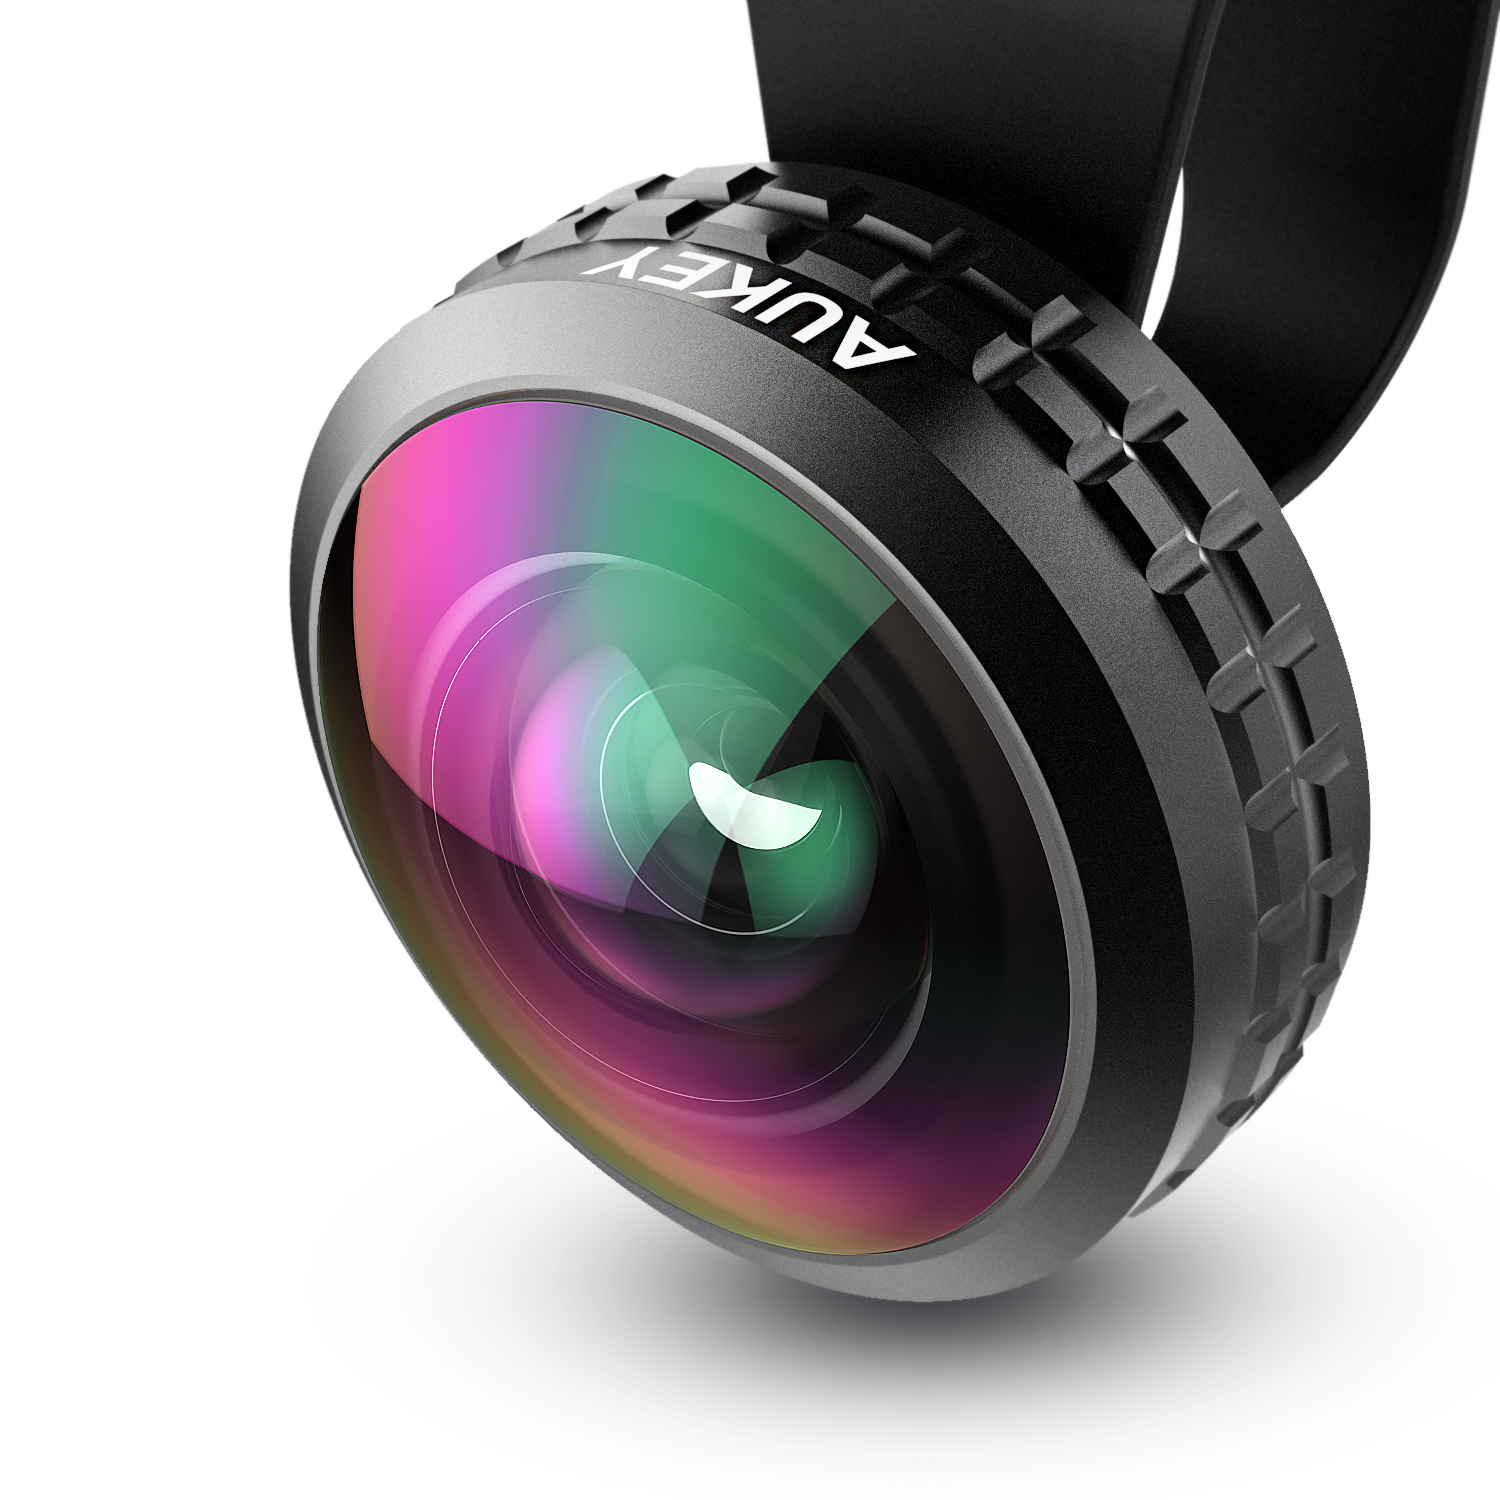 Canon Wide Angle Lens - The-Digital-Picture.com